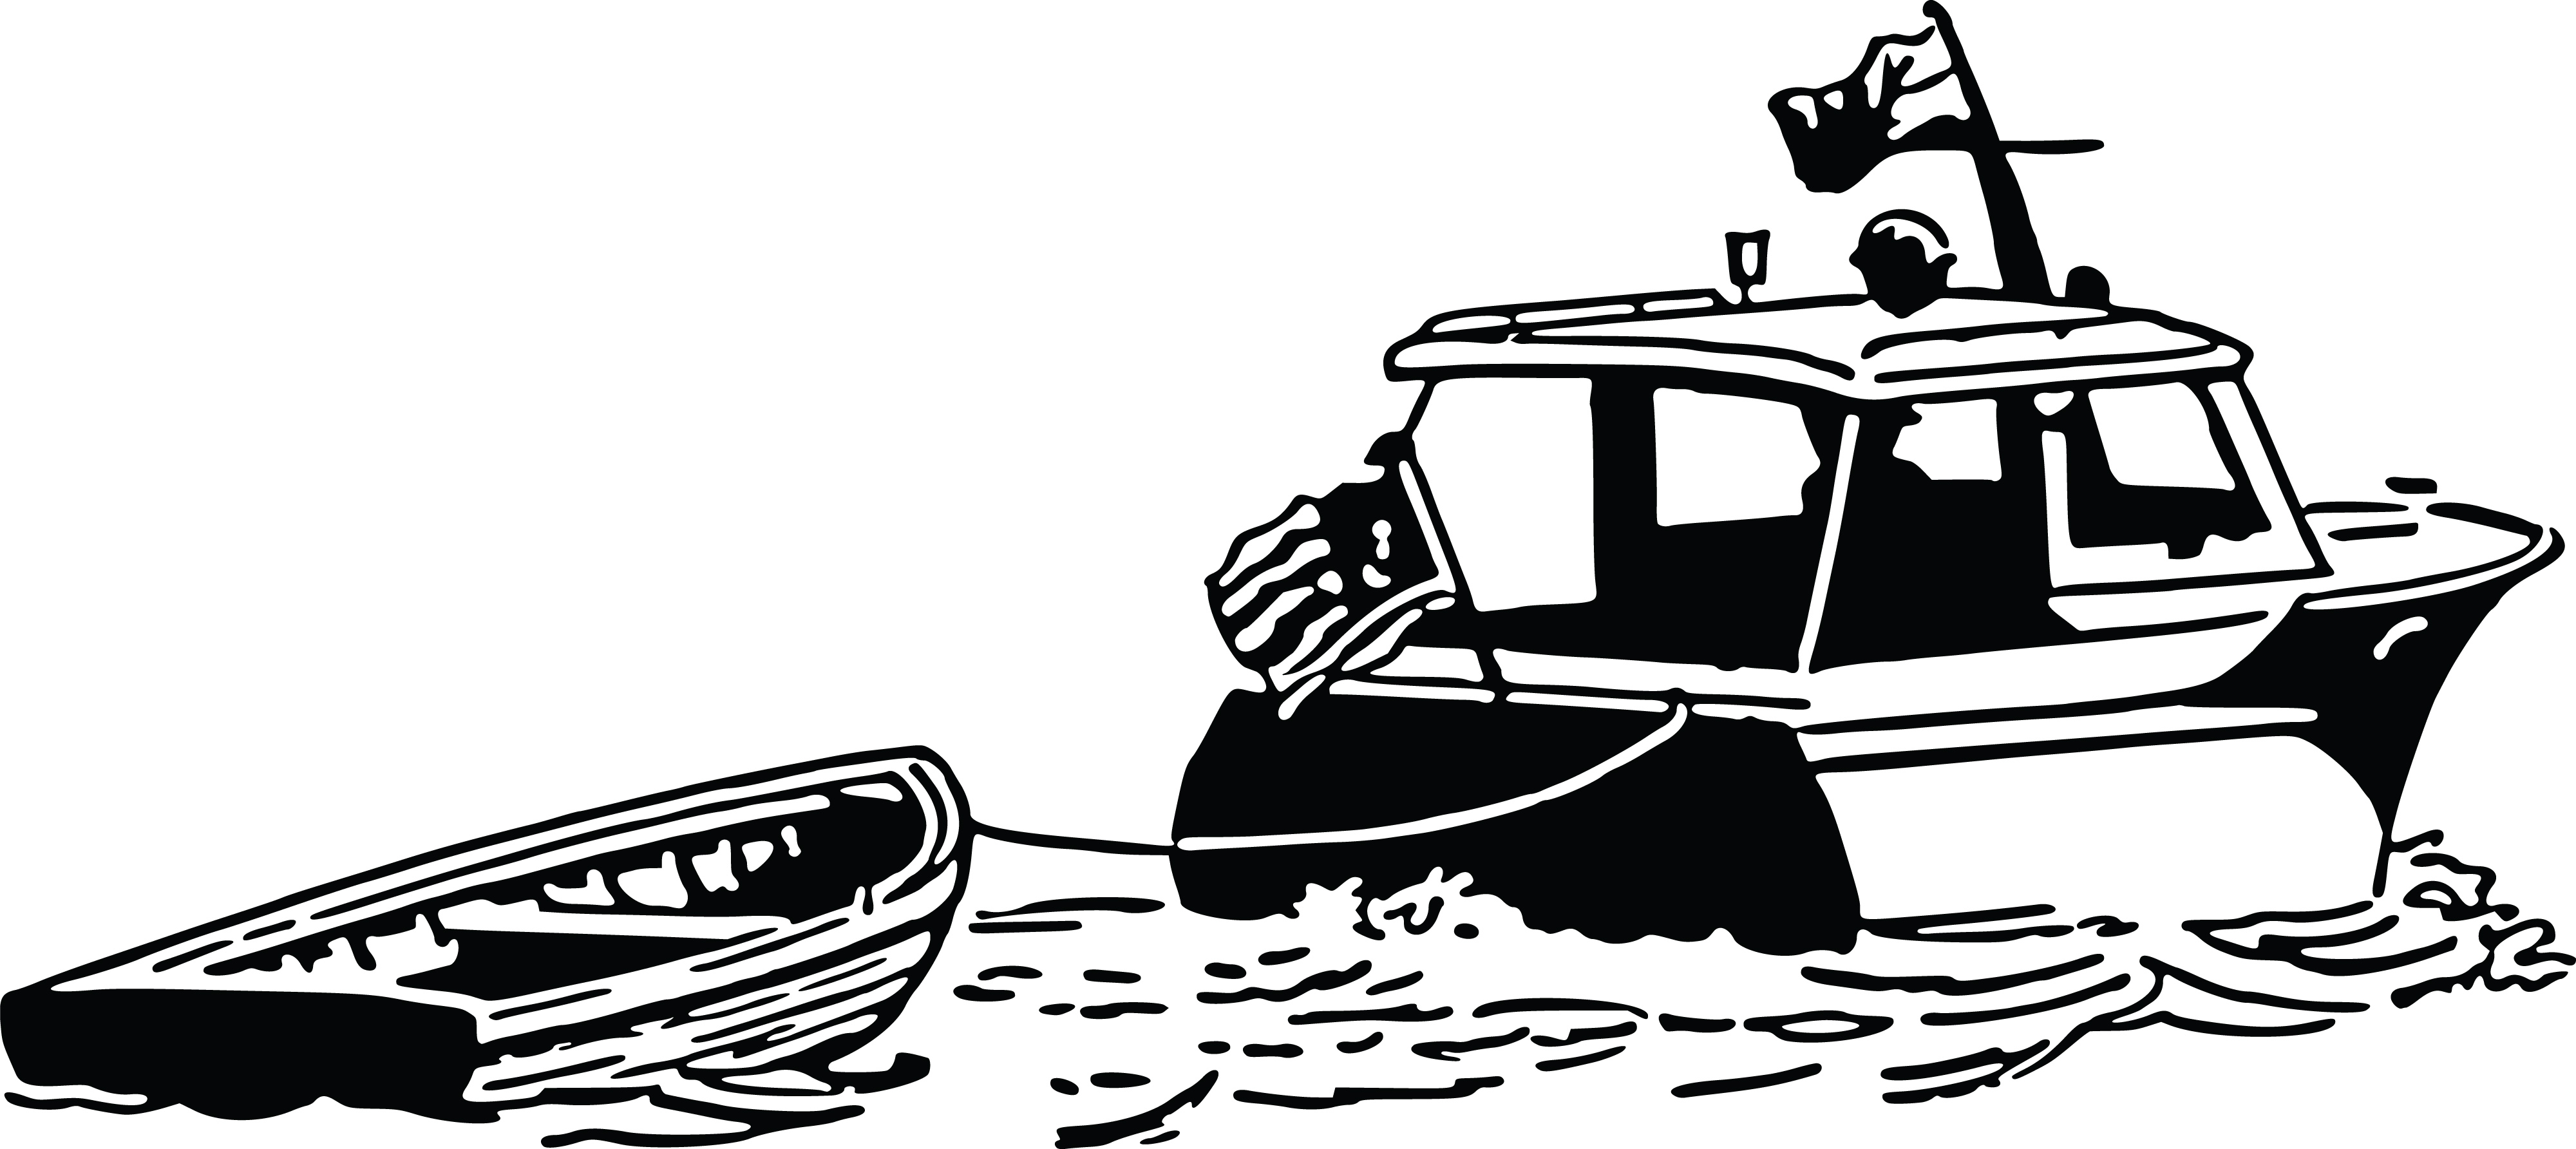 Free Clipart Of A Boat Pulling Another